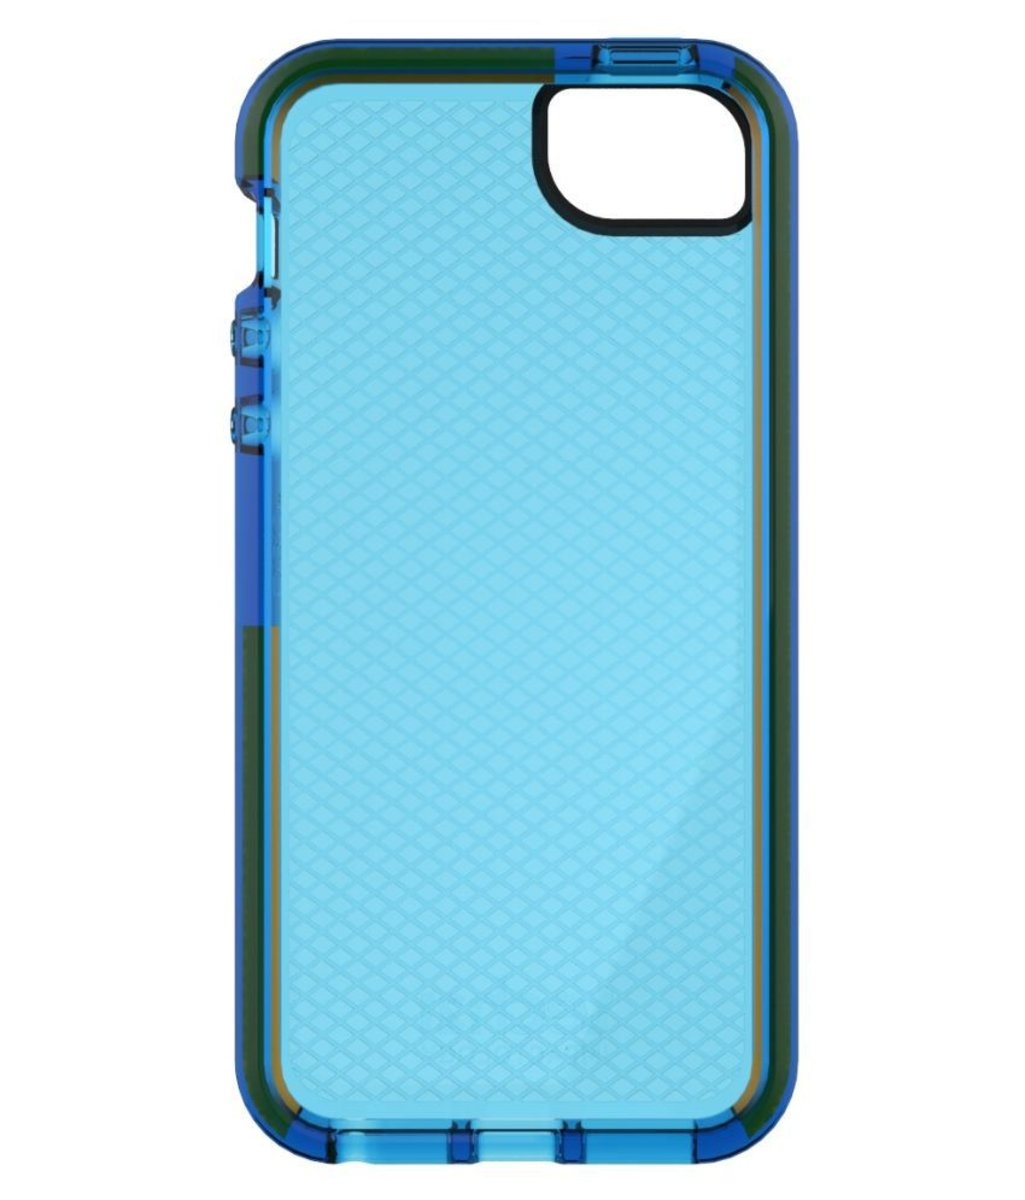 Evo Mesh Case for Apple iPhone 5/5s/5se 藍色抗震電話套